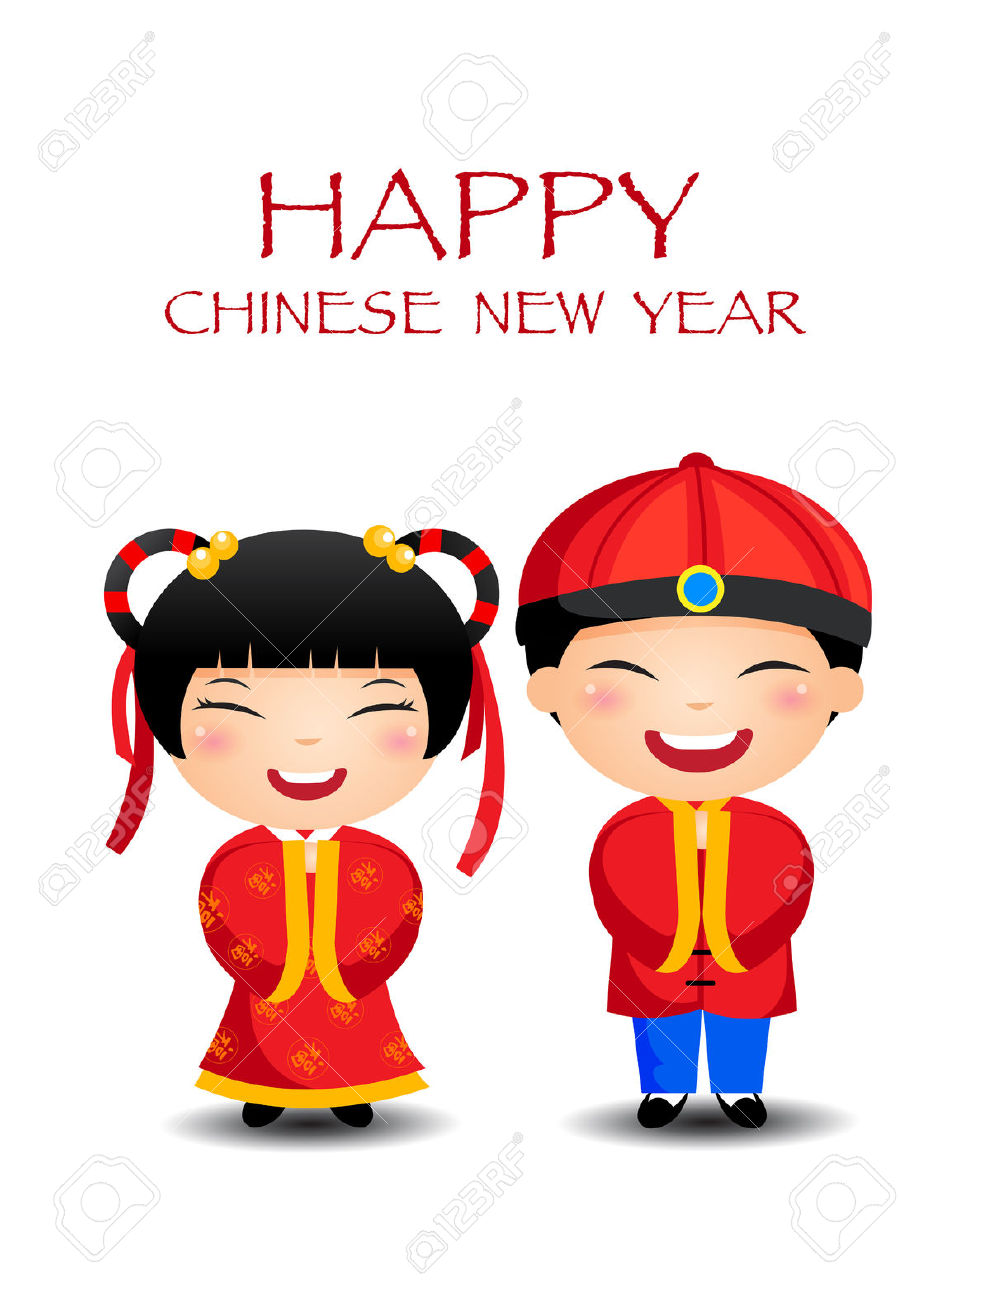 Asians clipart chinese kid #3